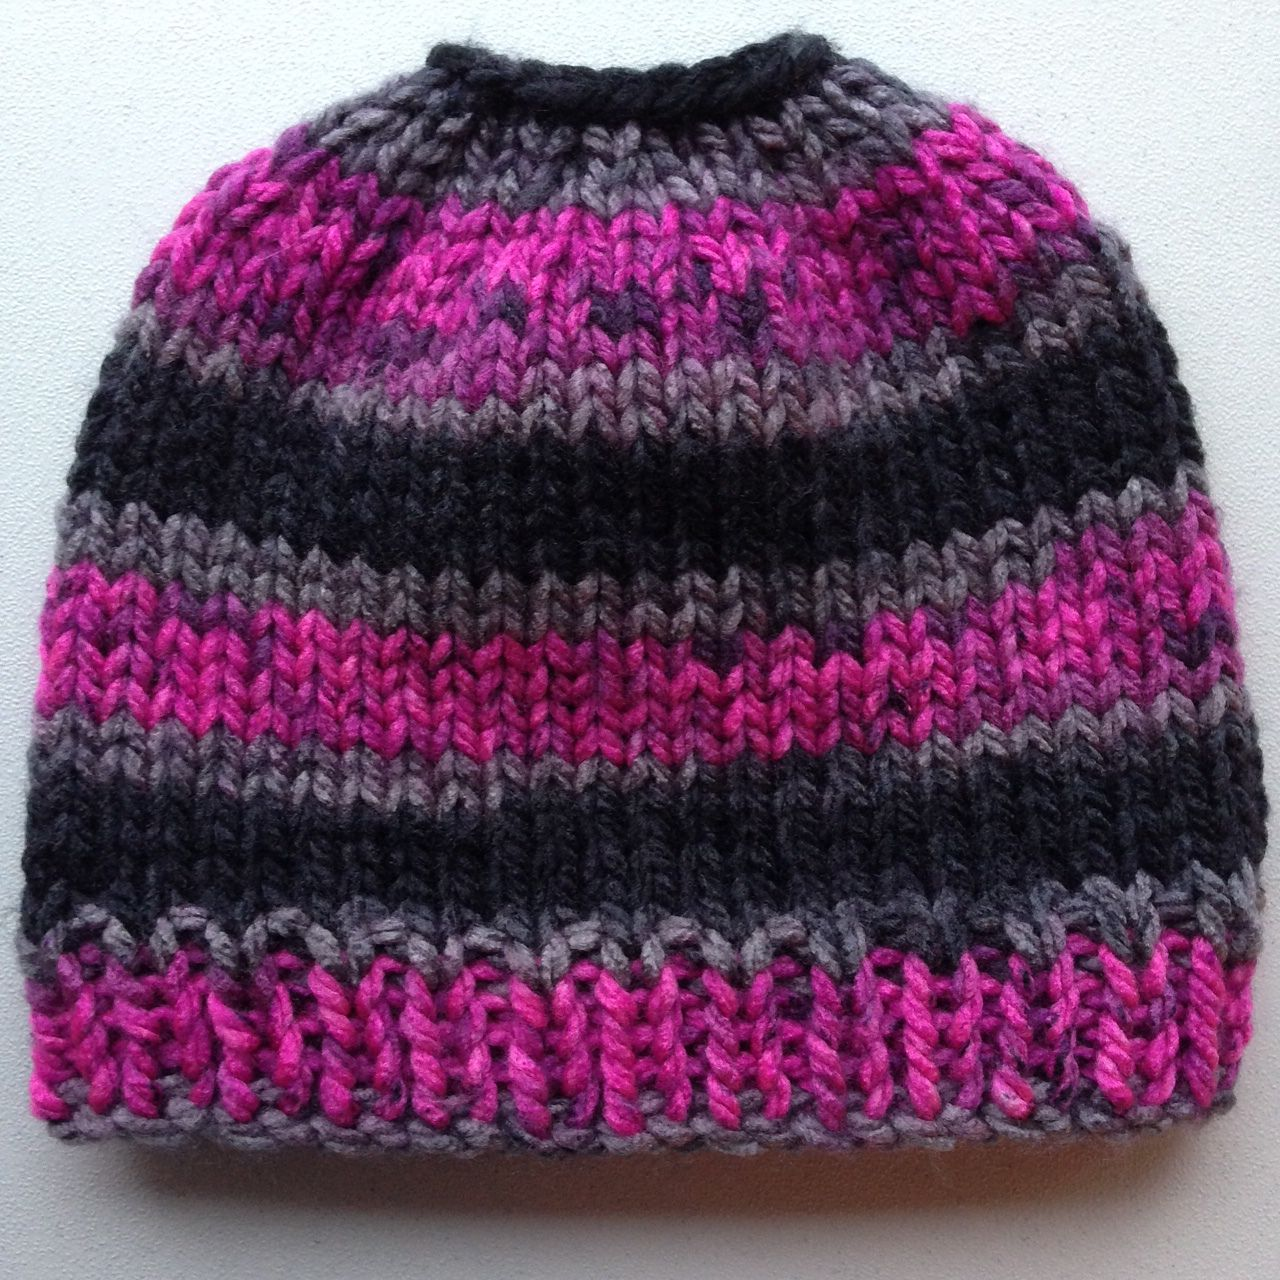 Ravelry: Simple Bulky Messy Bun / Pony Tail Beanie by Nicole Tsou ...